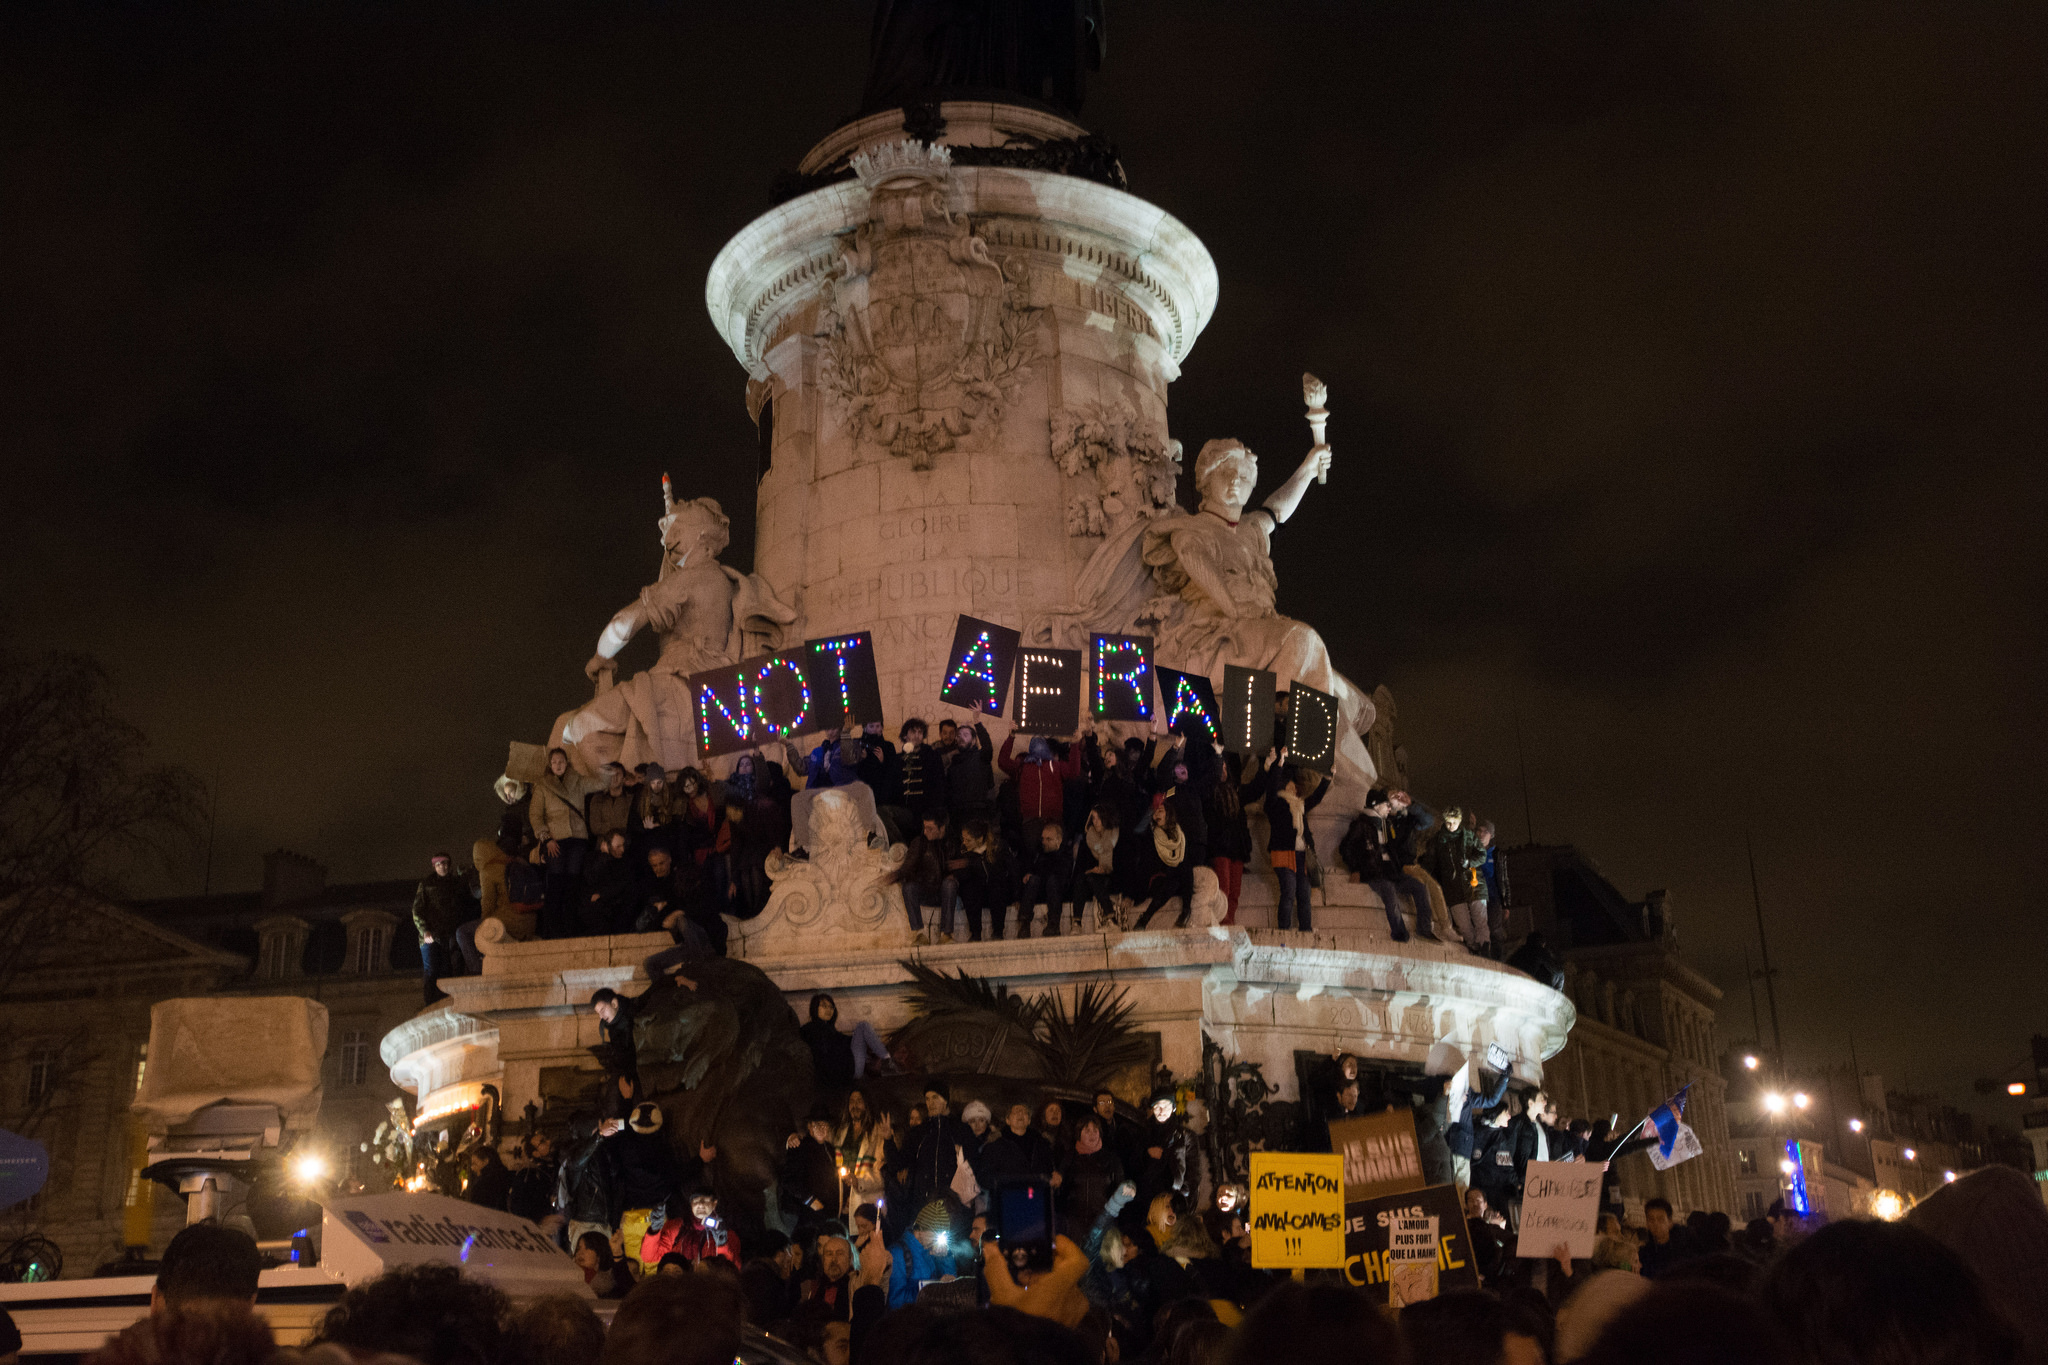 Charlie Hebdo memorial protest, Paris, January 7th, 2015